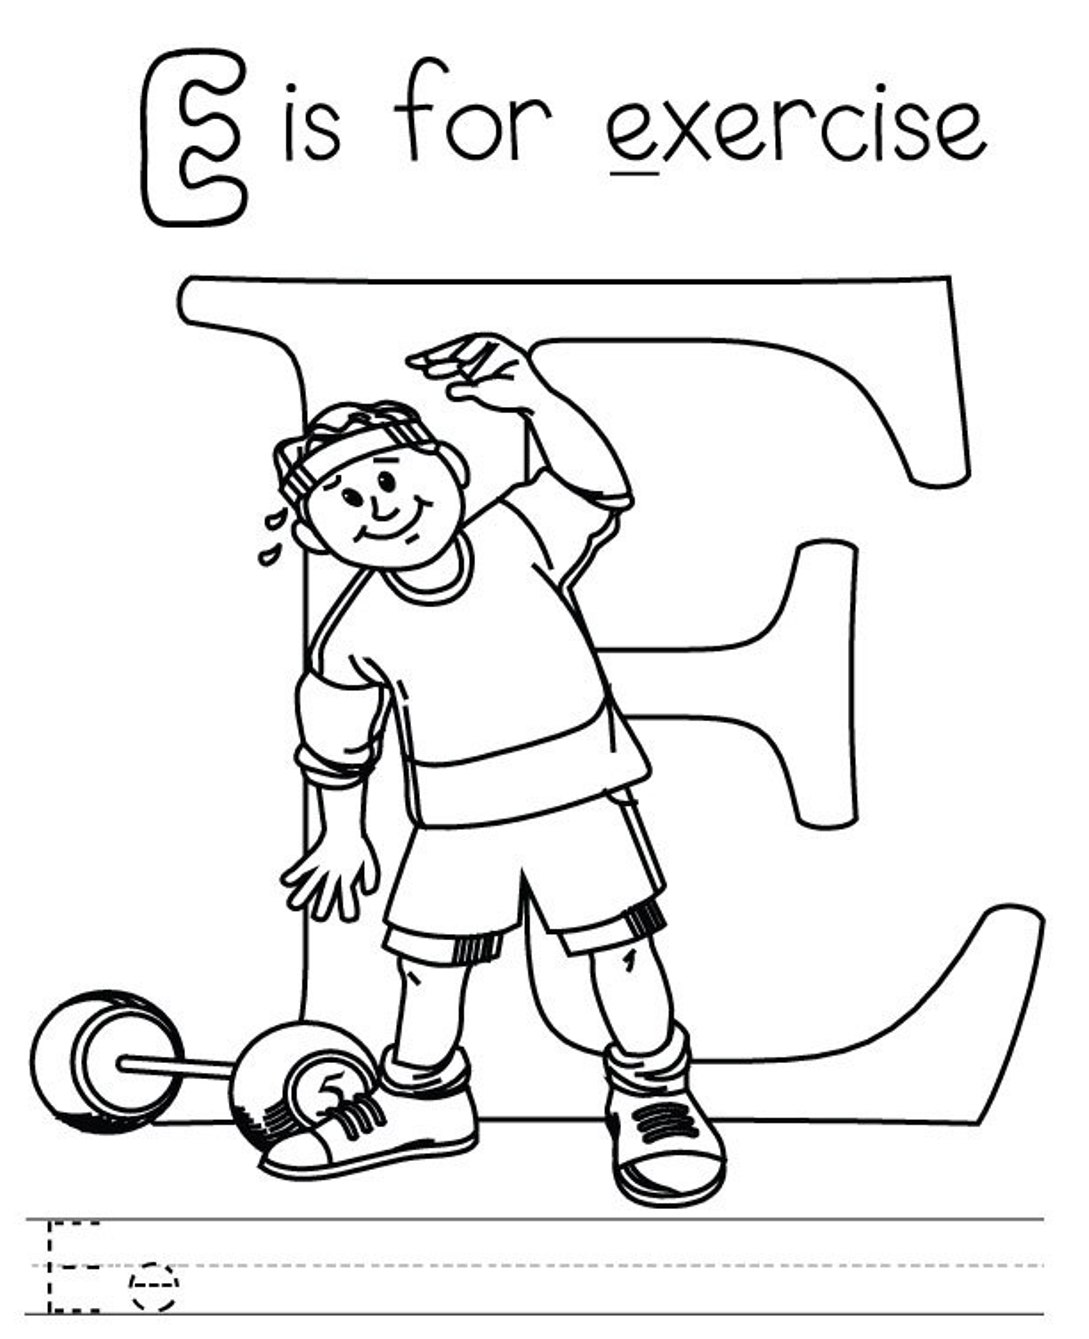 exercise coloring pages printable fitness coloring pages coloring pages to download and print coloring printable pages exercise